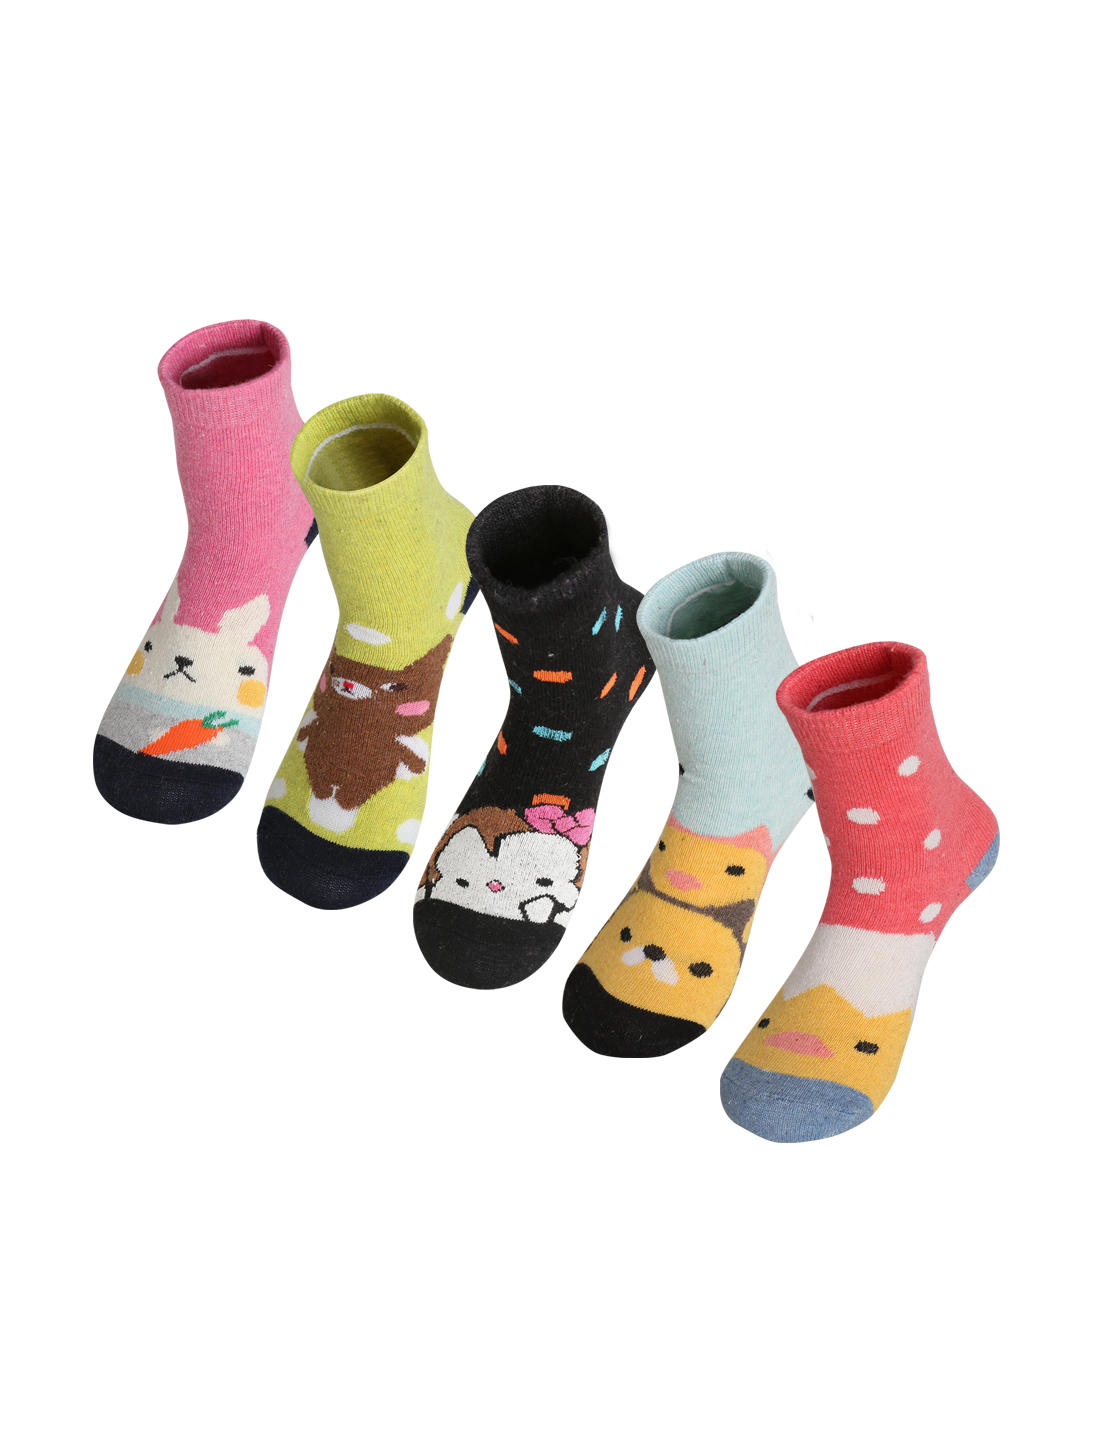 Women 5 Pack Animal Pattern Thermal Crew Socks 7-9 Assorted-2